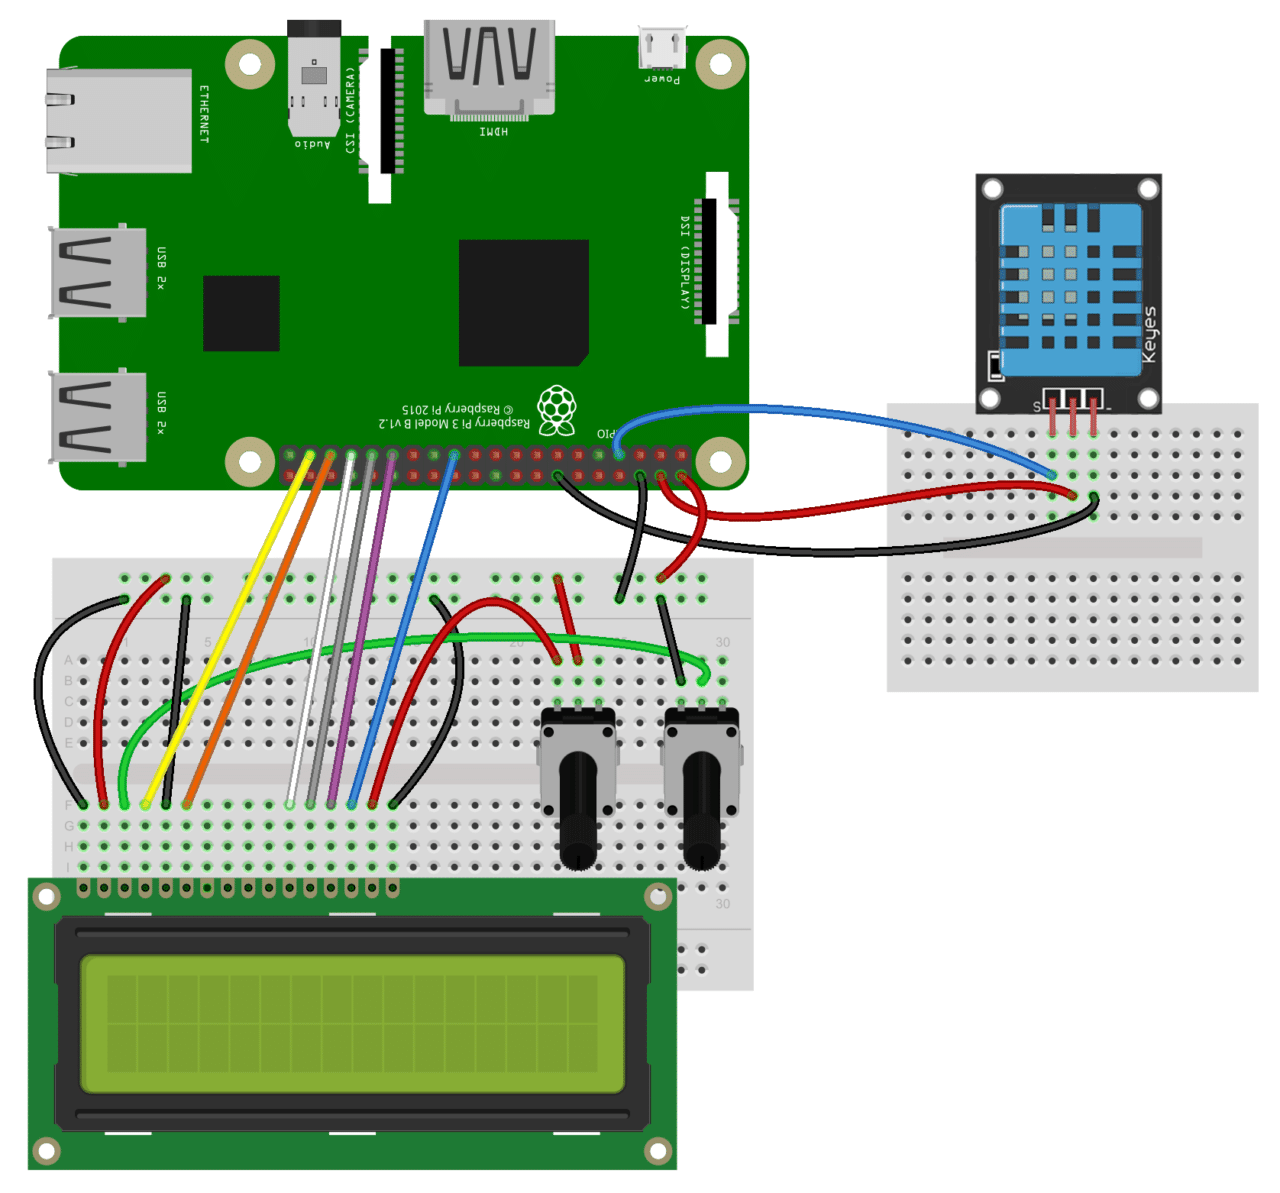 How To Set Up The Dht11 Humidity Sensor On Raspberry Pi Wiringpi Php Wiring For Lcd Output